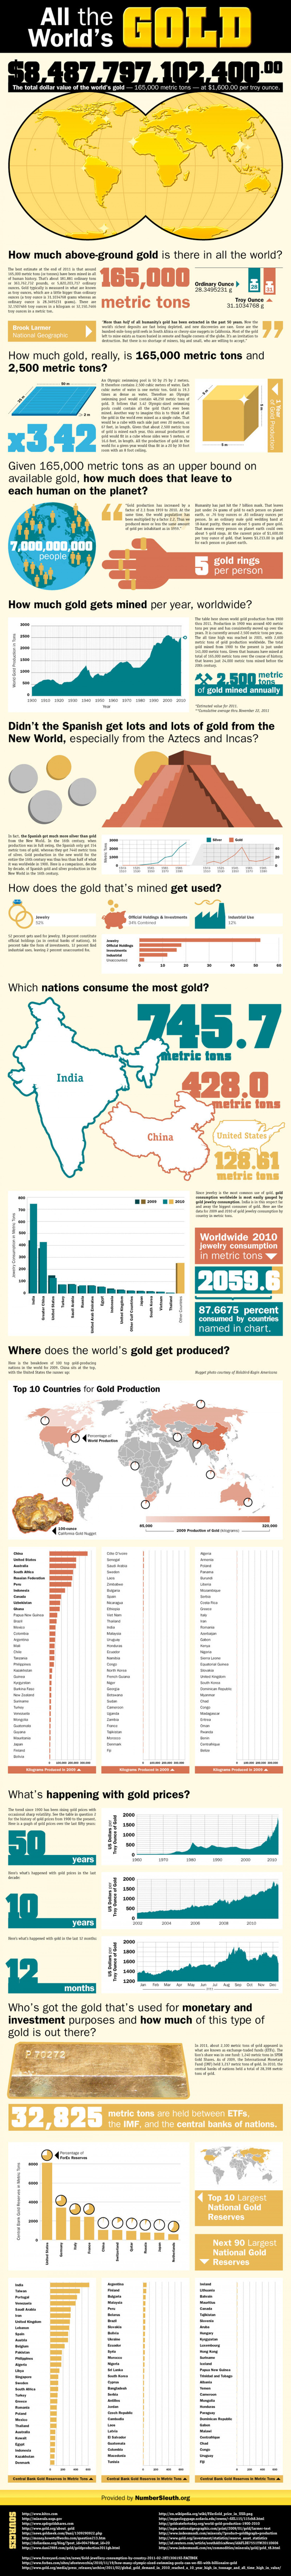 All the World's Gold Still Wouldn't Cover the US National Debt Infographic